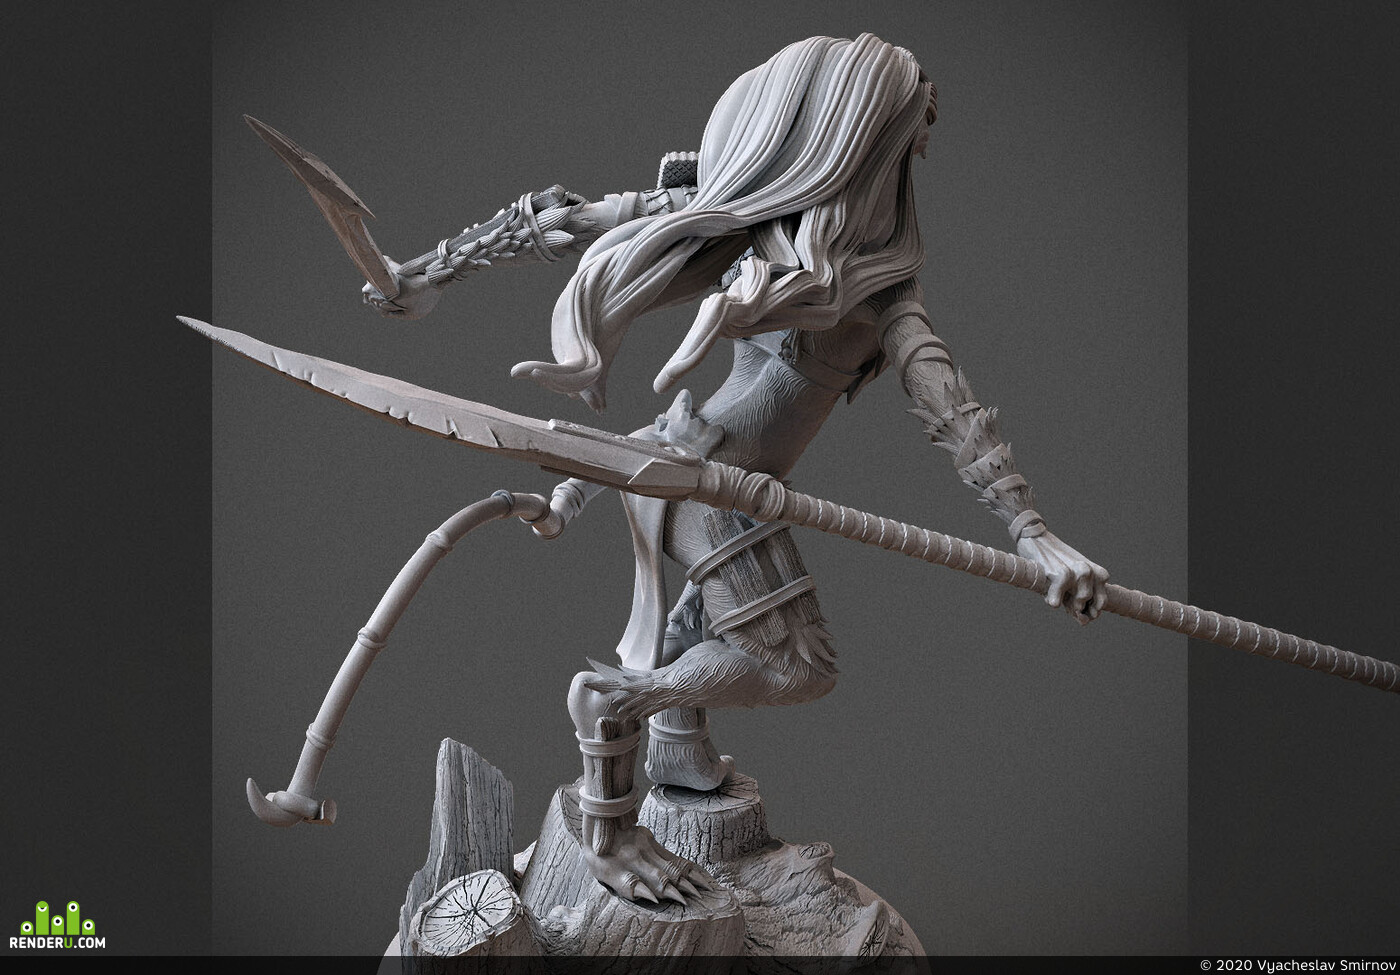 Digital 3D, Fantasy, Board & Card Game Art, Character Modeling, Ink-Eyes, Magic: The Gathering, mtg, magic, Wizards of the Coast